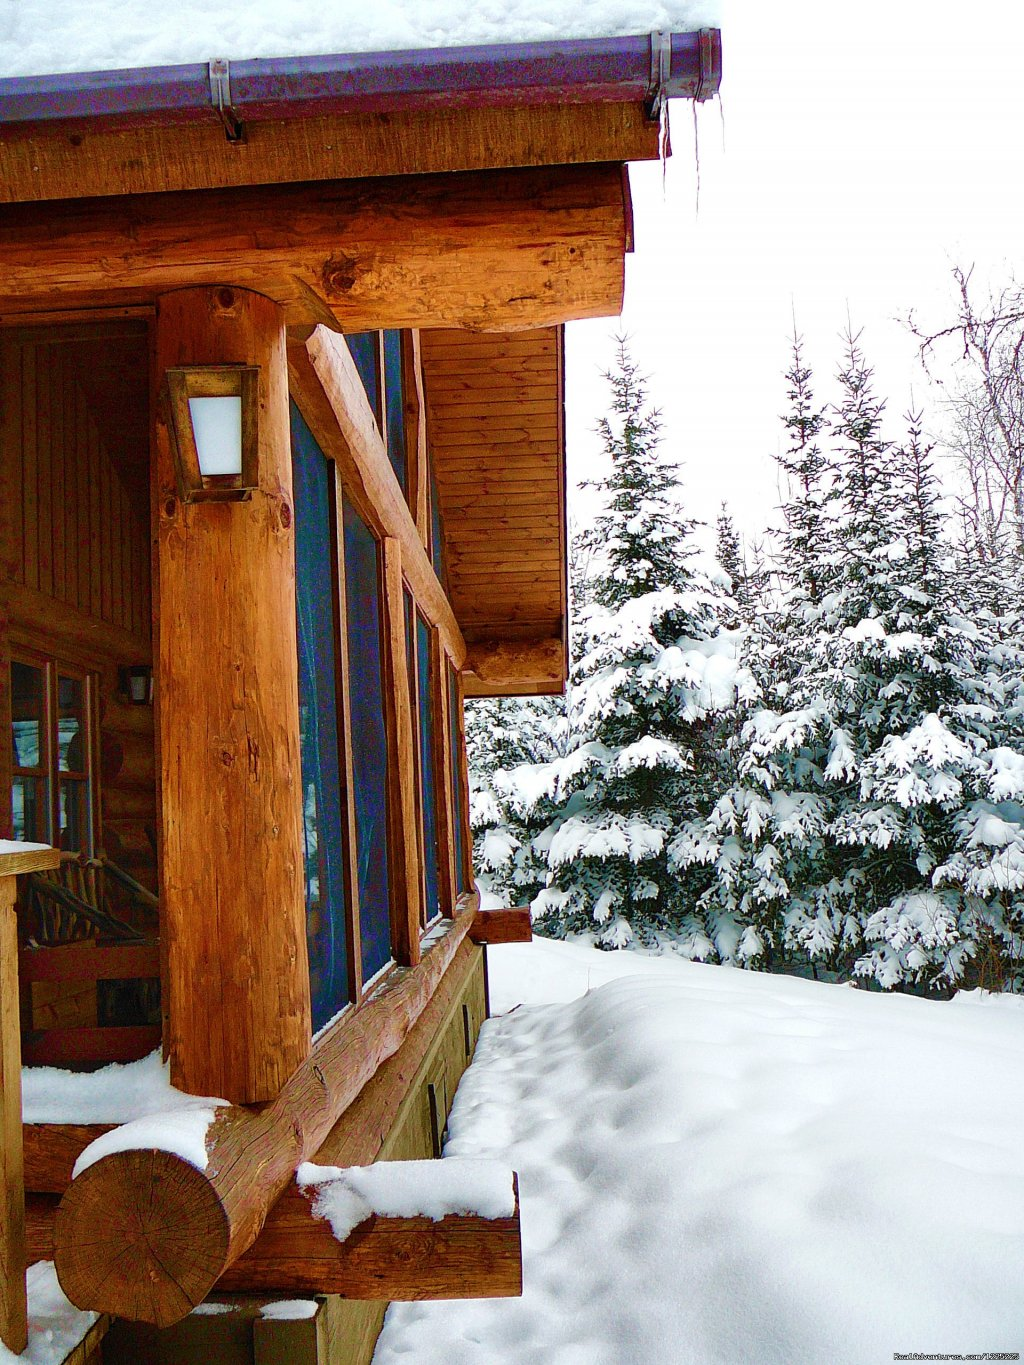 Beautiful Gunflint Trail cabin lodging on the edge of Minnesota's famed BWCAW. Open all year. Top-rated resort offers canoeing,kayaking,fishing,swimming,hiking, relaxing.70K of groomed x-country ski trails through the deep woods. Dog sled trips.